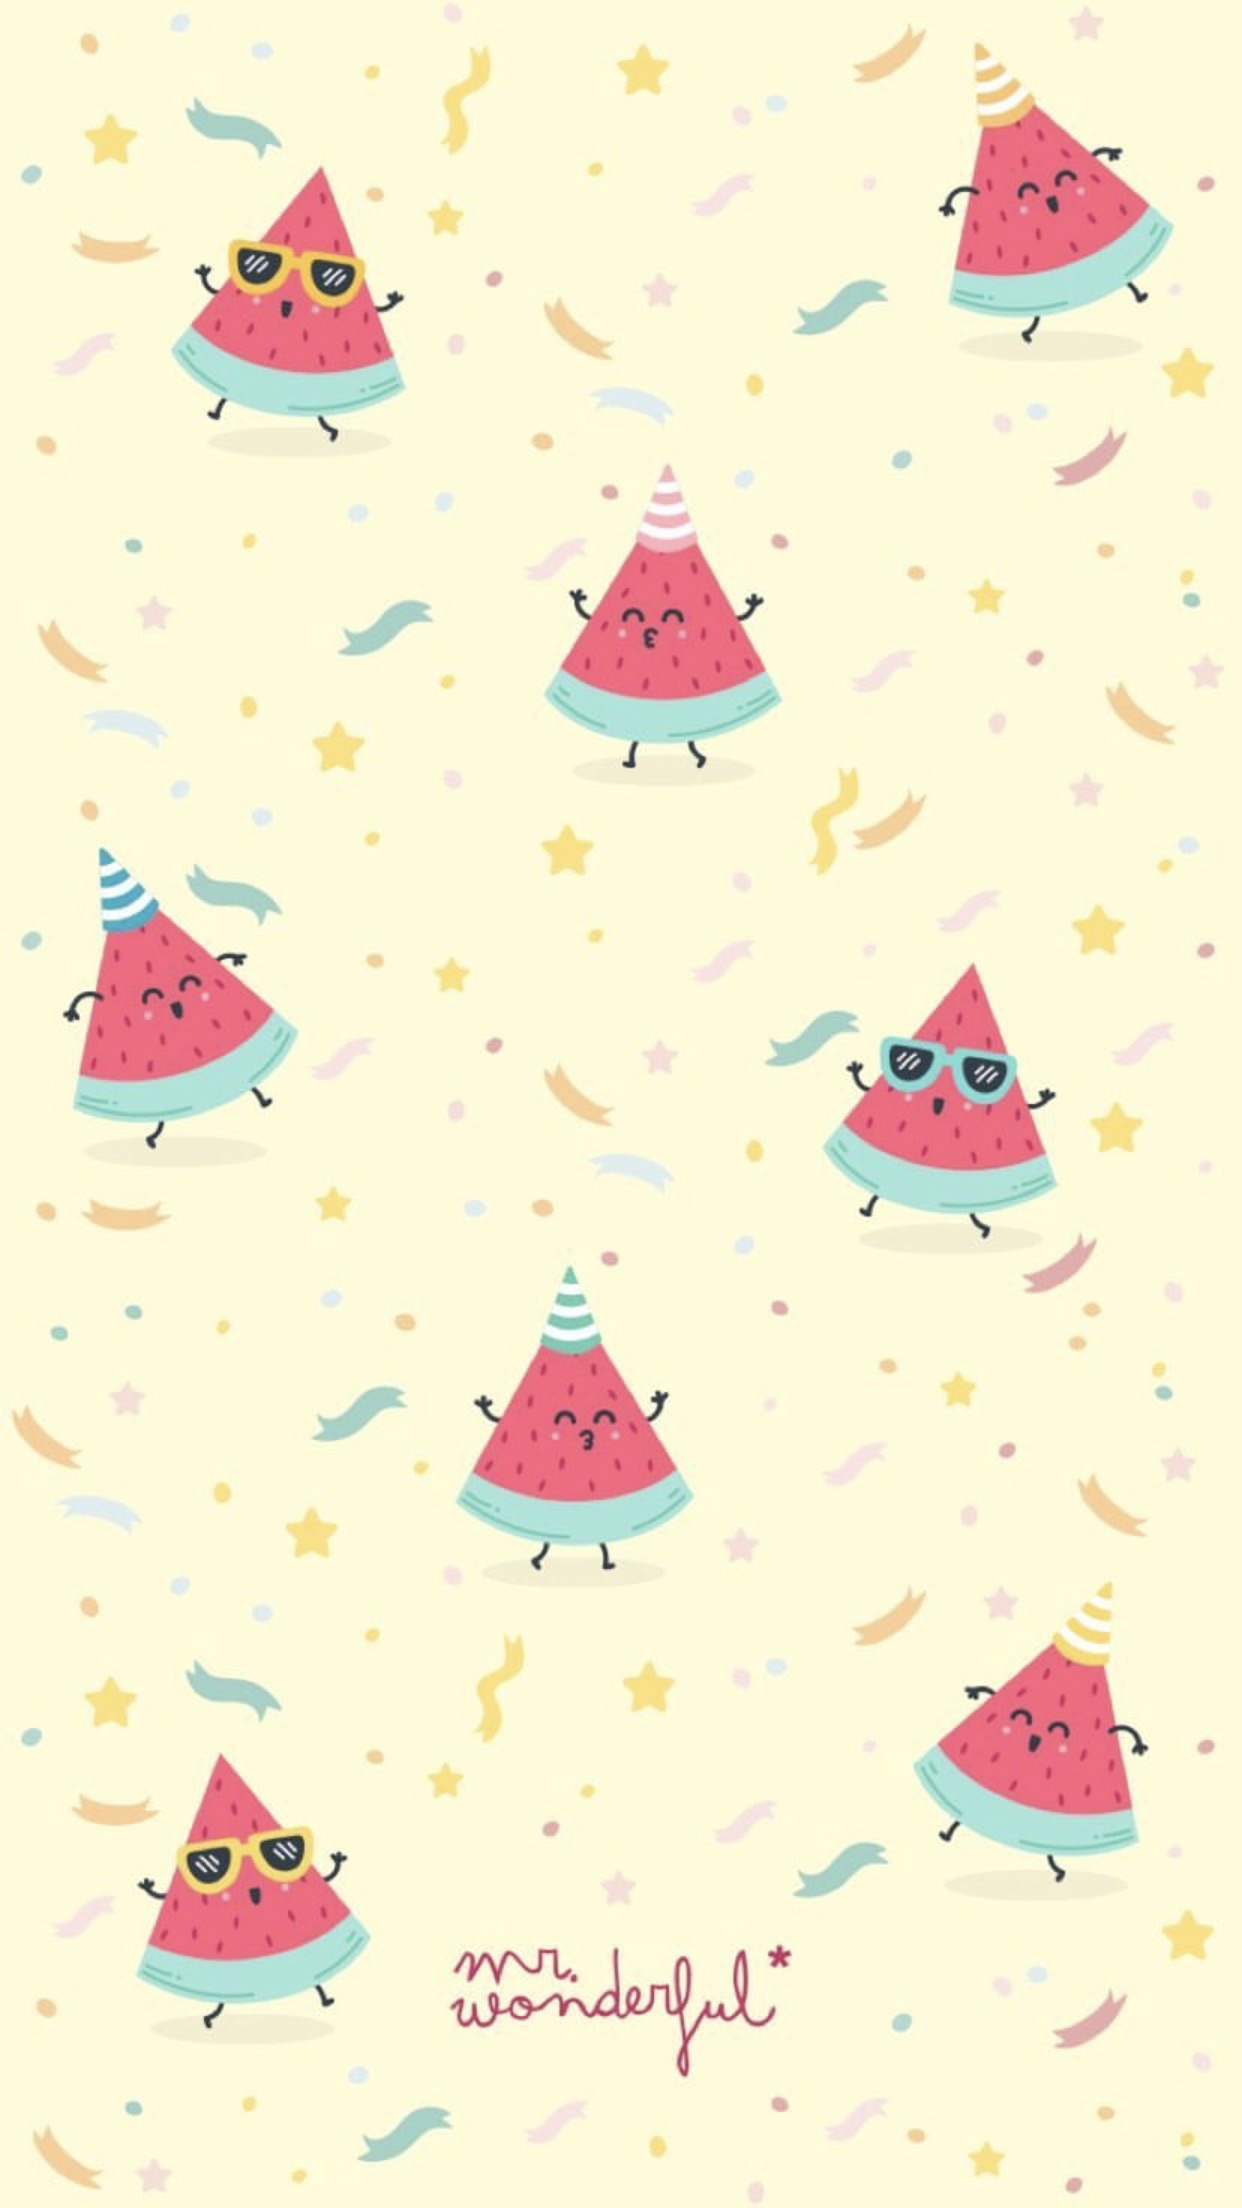 fondos de pantalla, fondo de pantalla, fondo de pantalla divertido, fondo de pantalla femenino, girly backgrounds, cool background, colorful backfround, fondo de pantalla patron, pattern, fondo de pantalla de sandías, watermelon background.